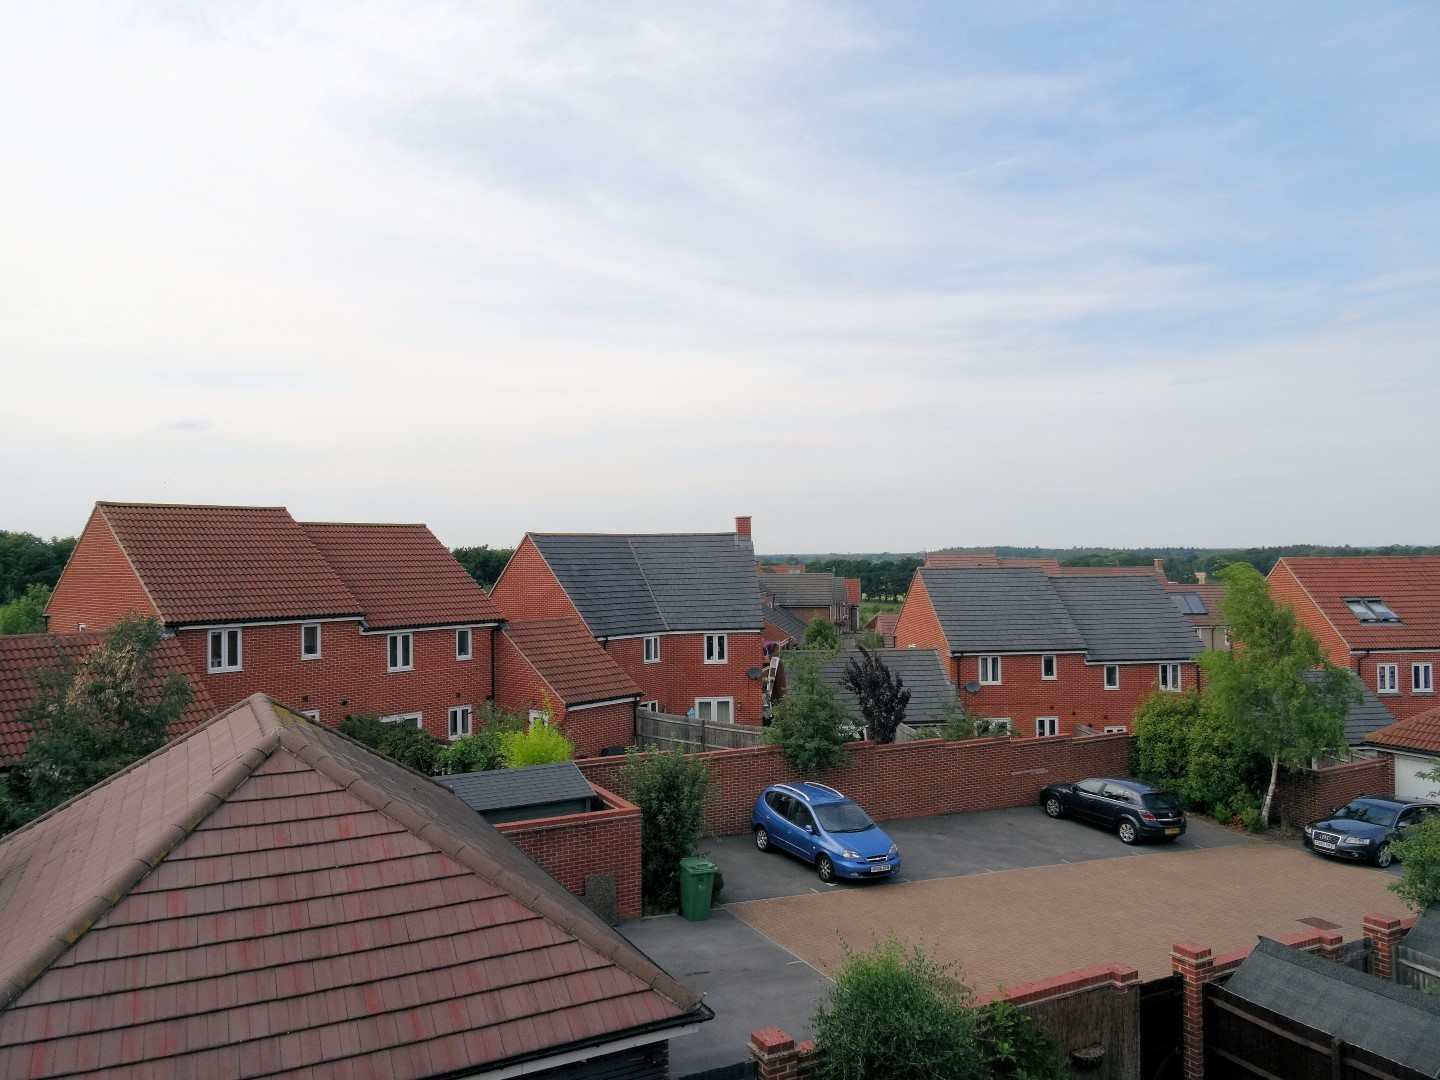 3 Bedroom Town House For Sale In Basingstoke Make Your Own Beautiful  HD Wallpapers, Images Over 1000+ [ralydesign.ml]